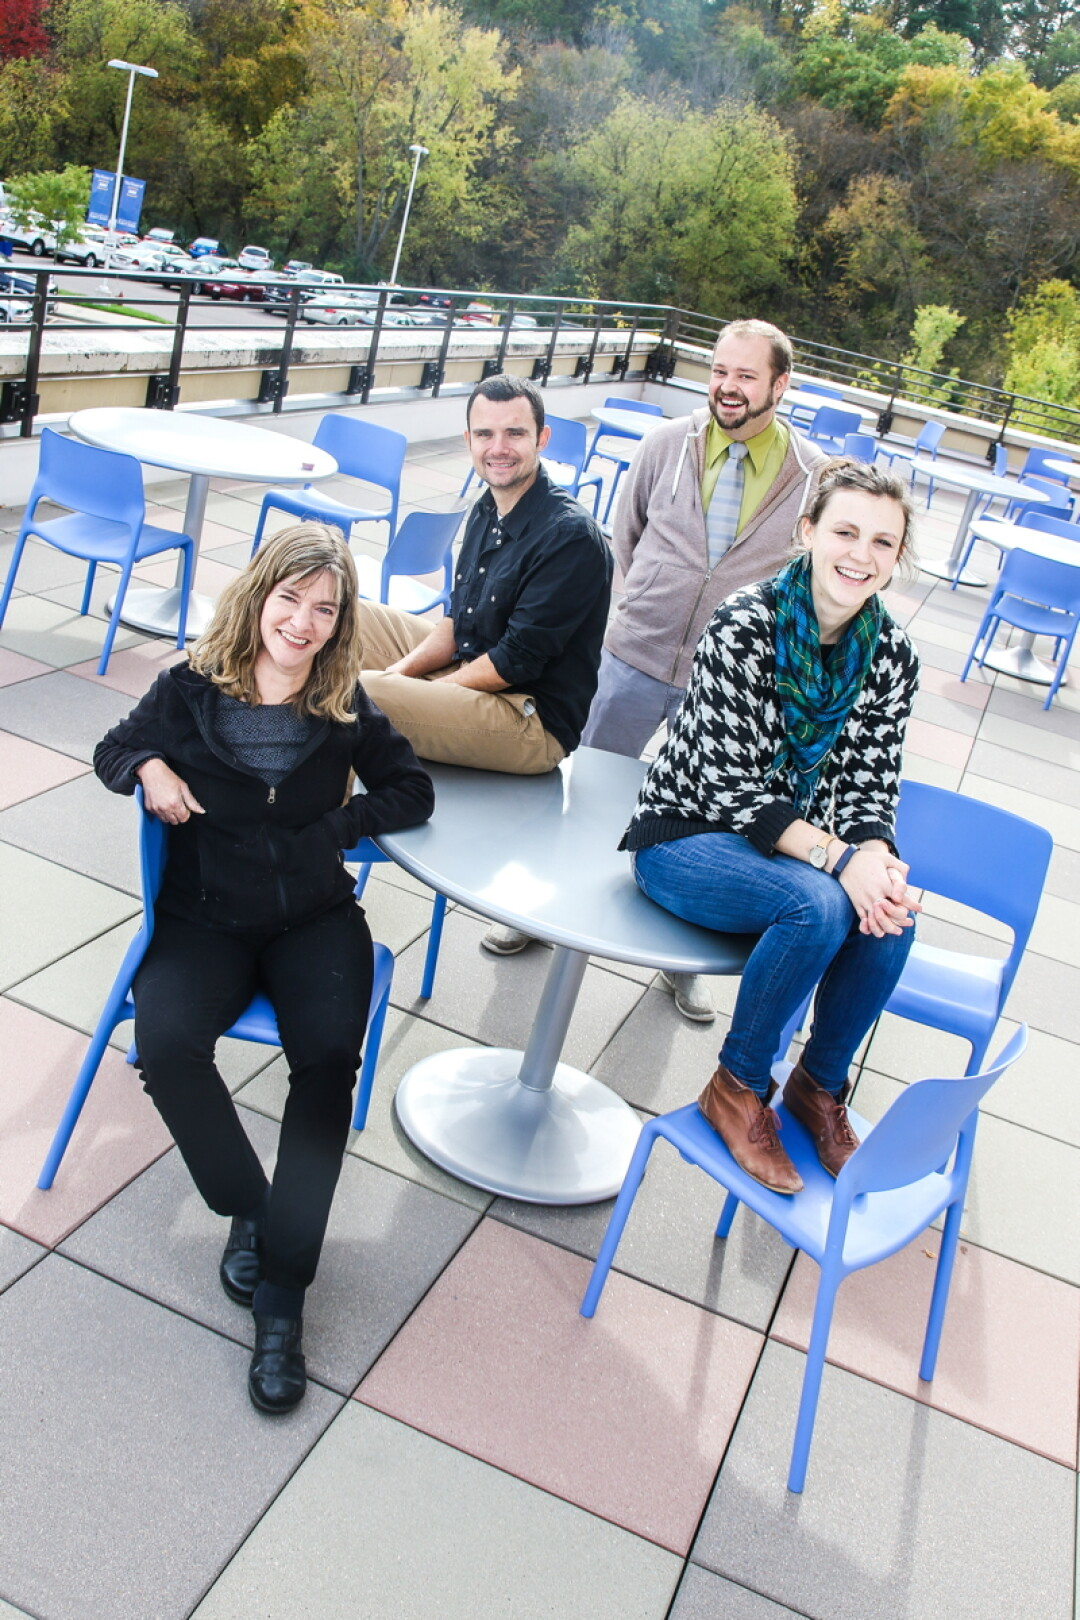 THEY'VE GOT THE WRITE STUFF. The team behind Barstow & Grand, a new Eau Claire-based literary journal, includes (clockwise from lower left) Kate Hinnant, B.J. Hollars, Eric Rasmussen, and Charlotte Kupsh.